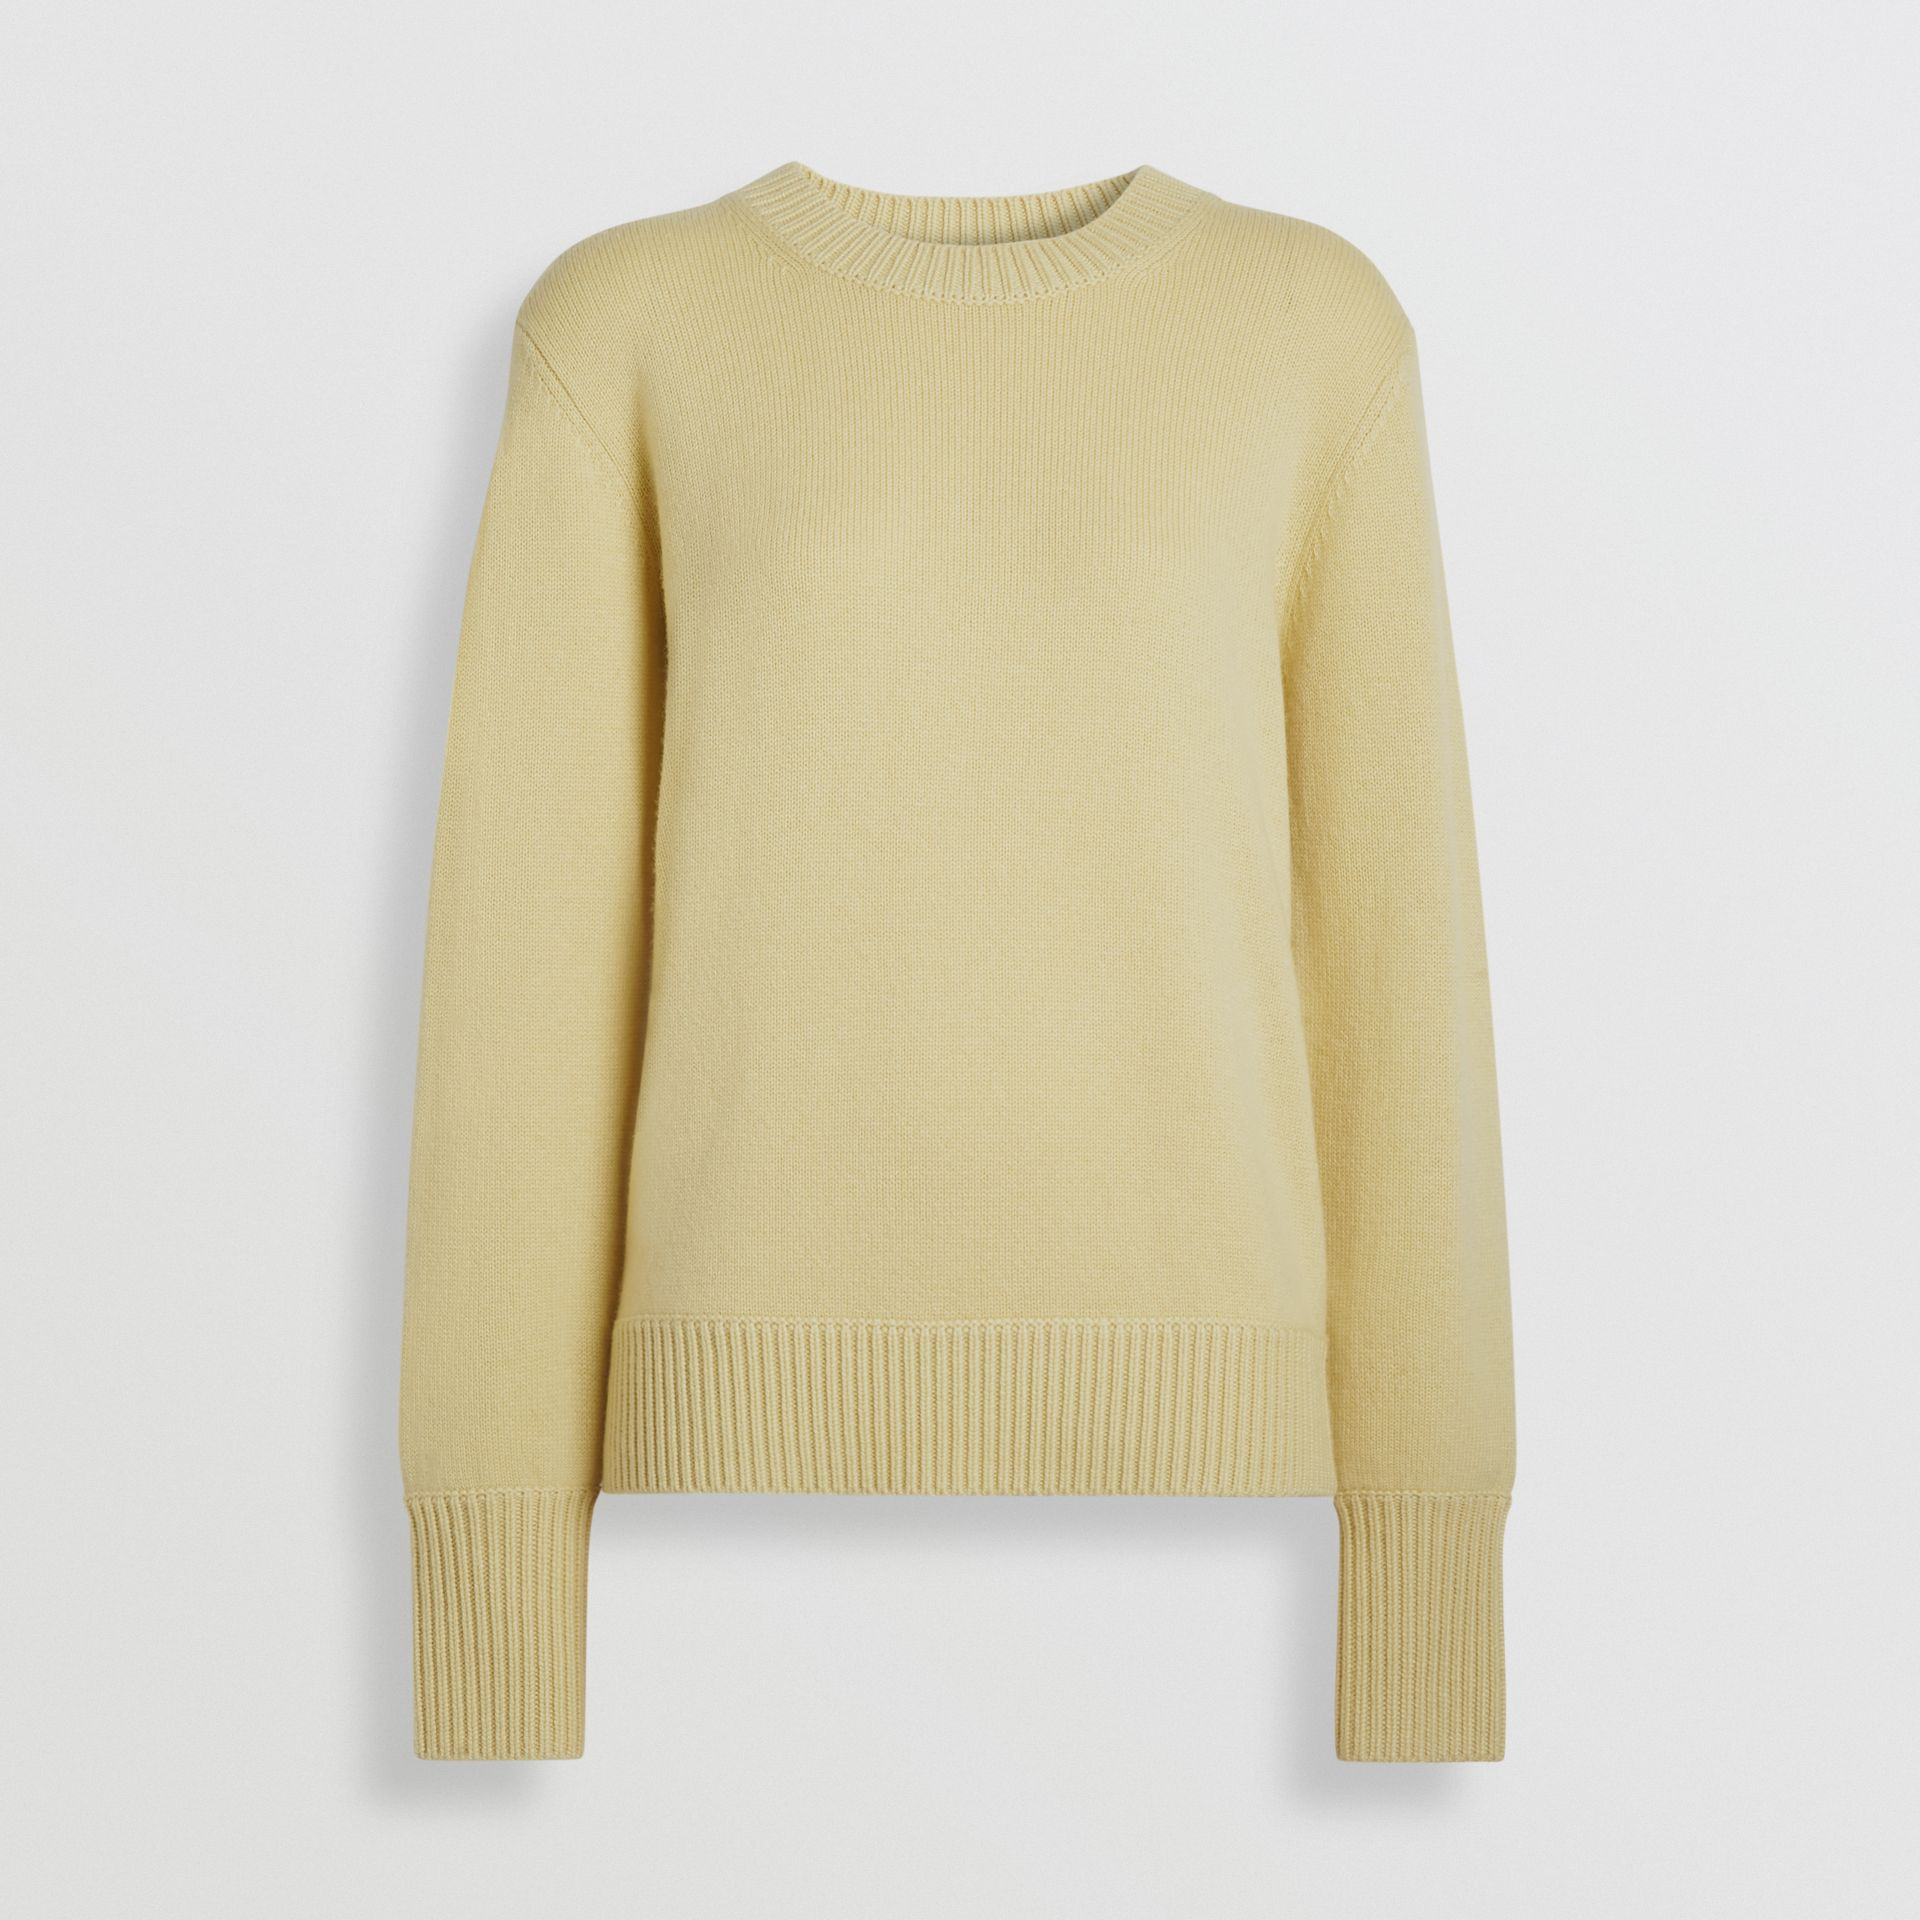 Archive Logo Appliqué Cashmere Sweater in Dusty Yellow - Women | Burberry Canada - gallery image 3